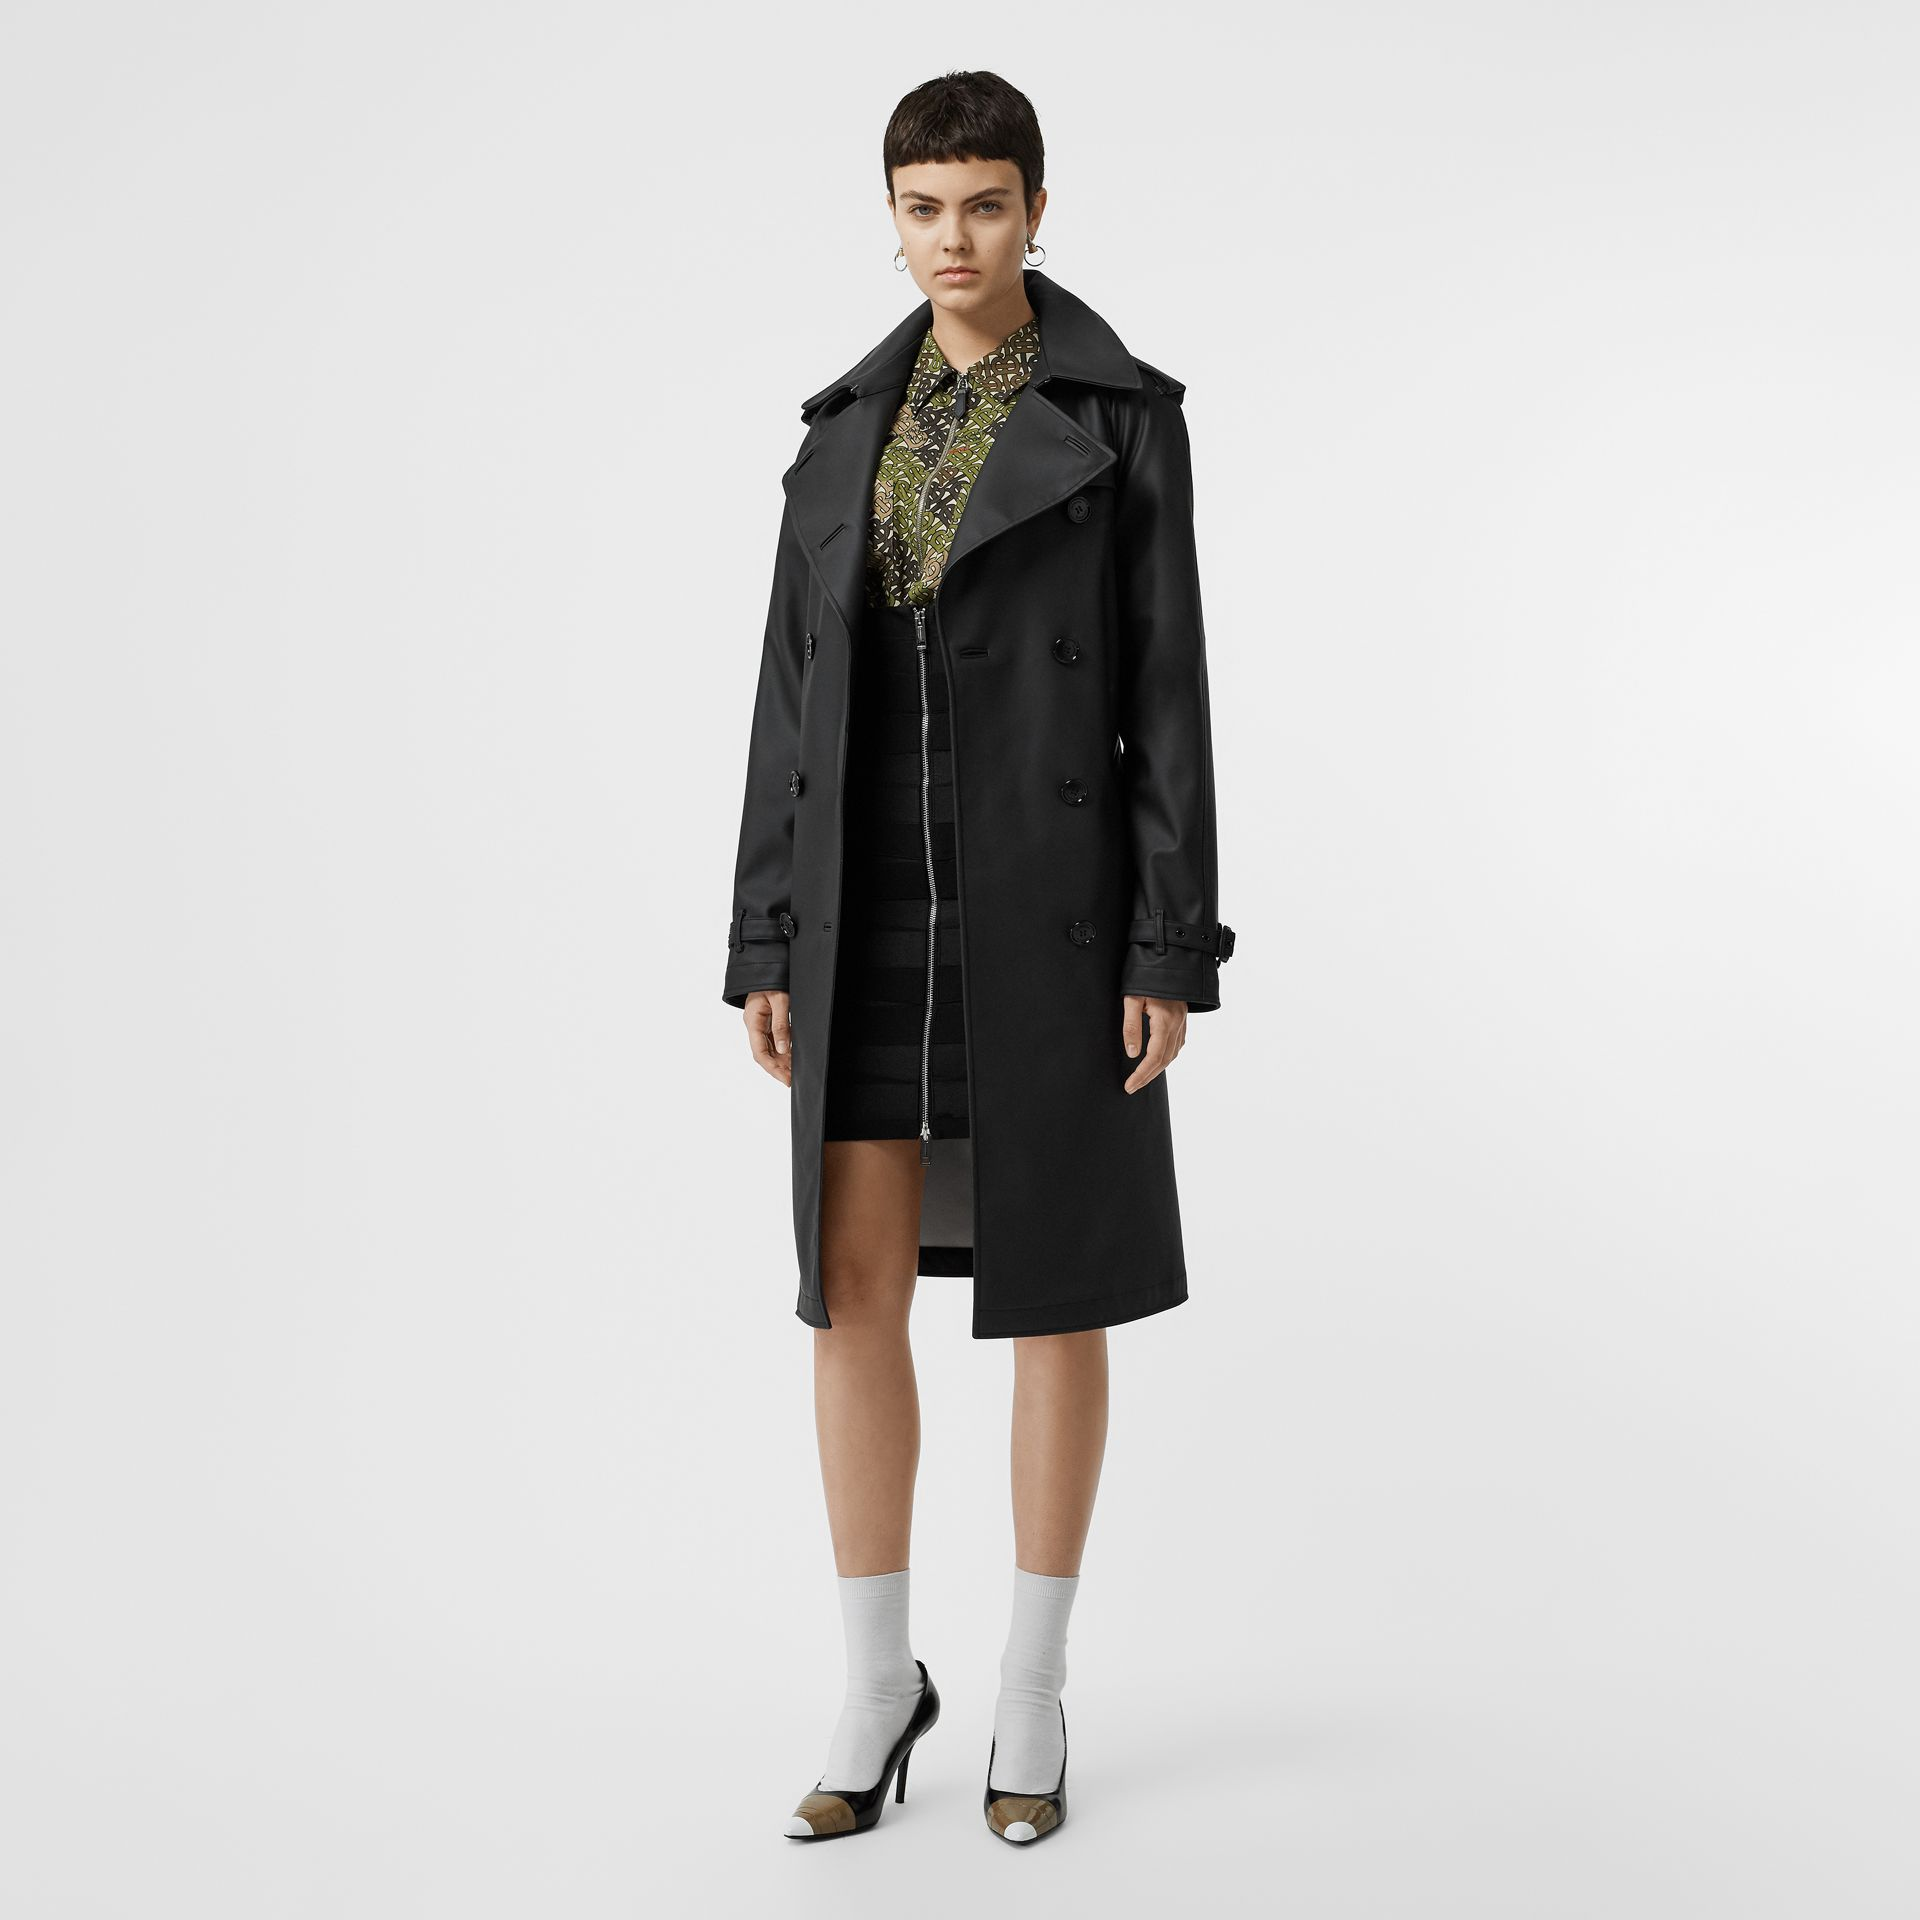 Logo Detail Showerproof Trench Coat in Black/white - Women | Burberry - gallery image 0